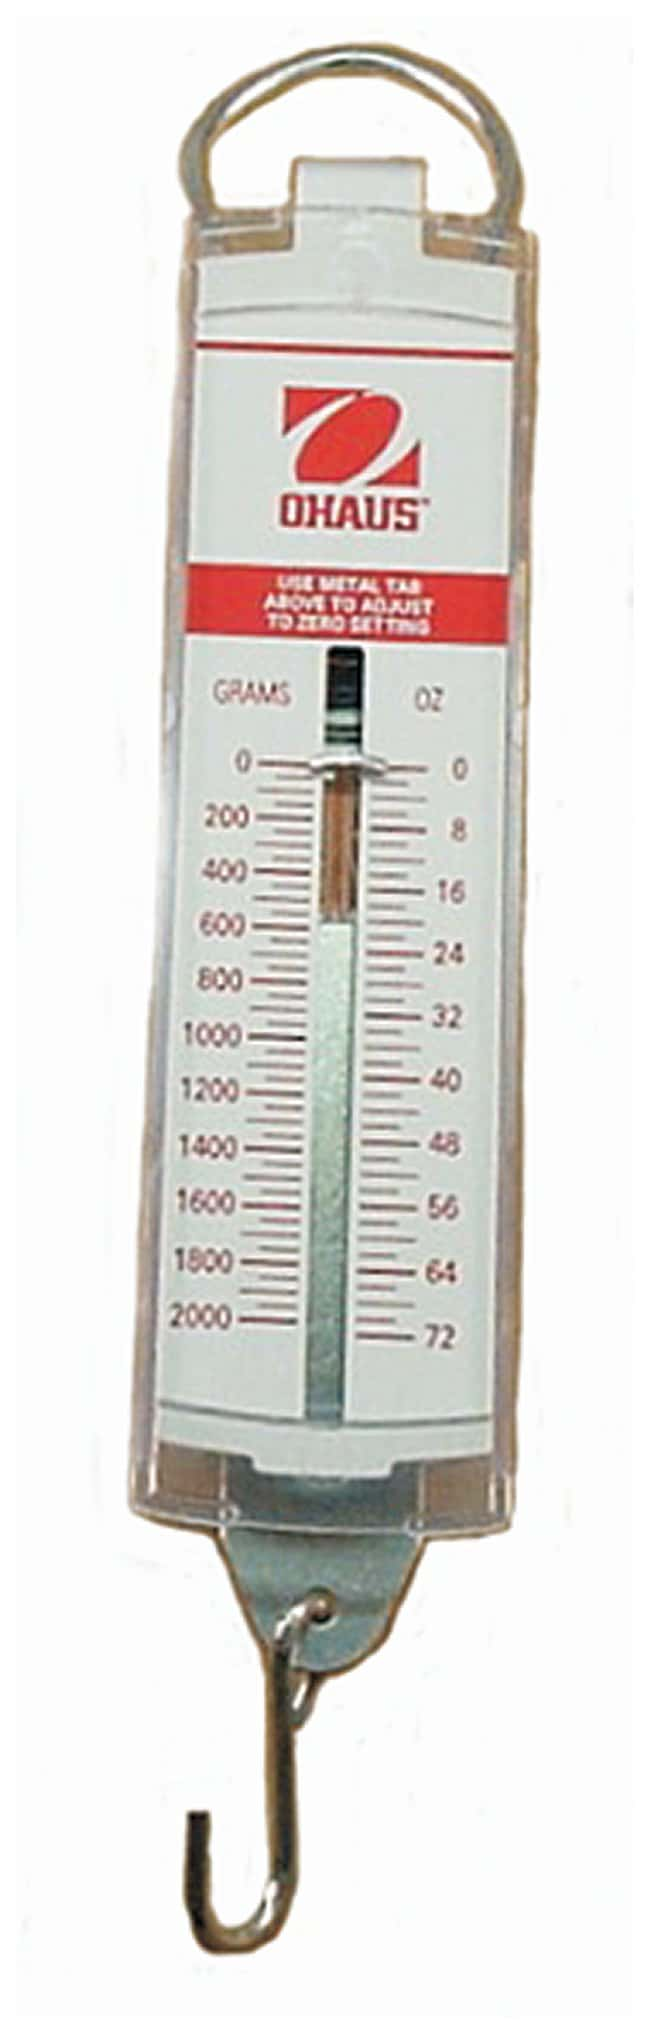 OHAUS Pull-Spring Scales:Healthcare:General Laboratory Equipment for Laboratory Spring Balance  177nar